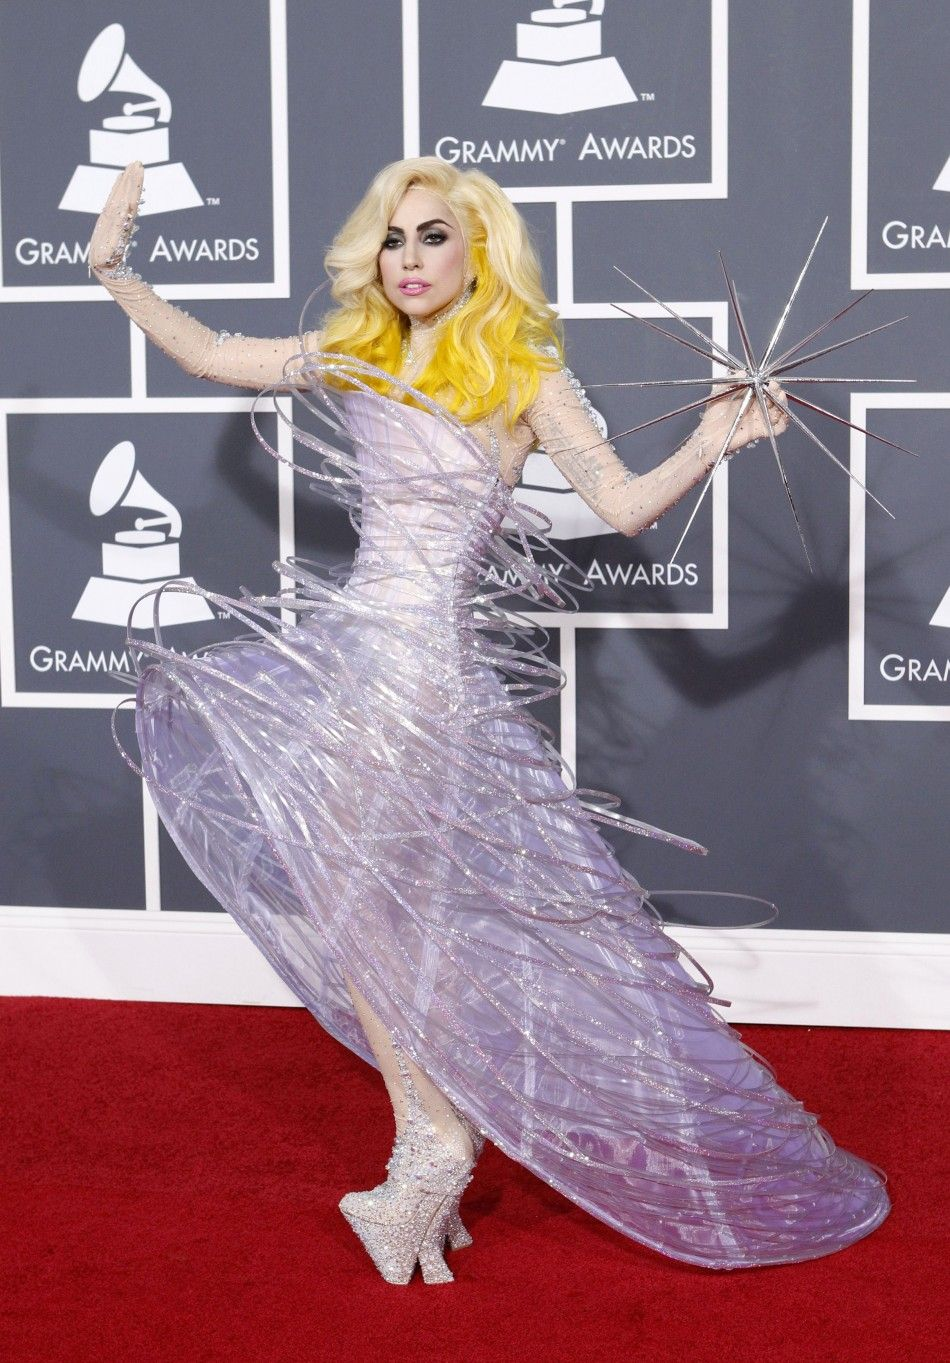 Top 10 Most Outrageous Lady Gaga Outfits | Lady Gaga Outfits ...